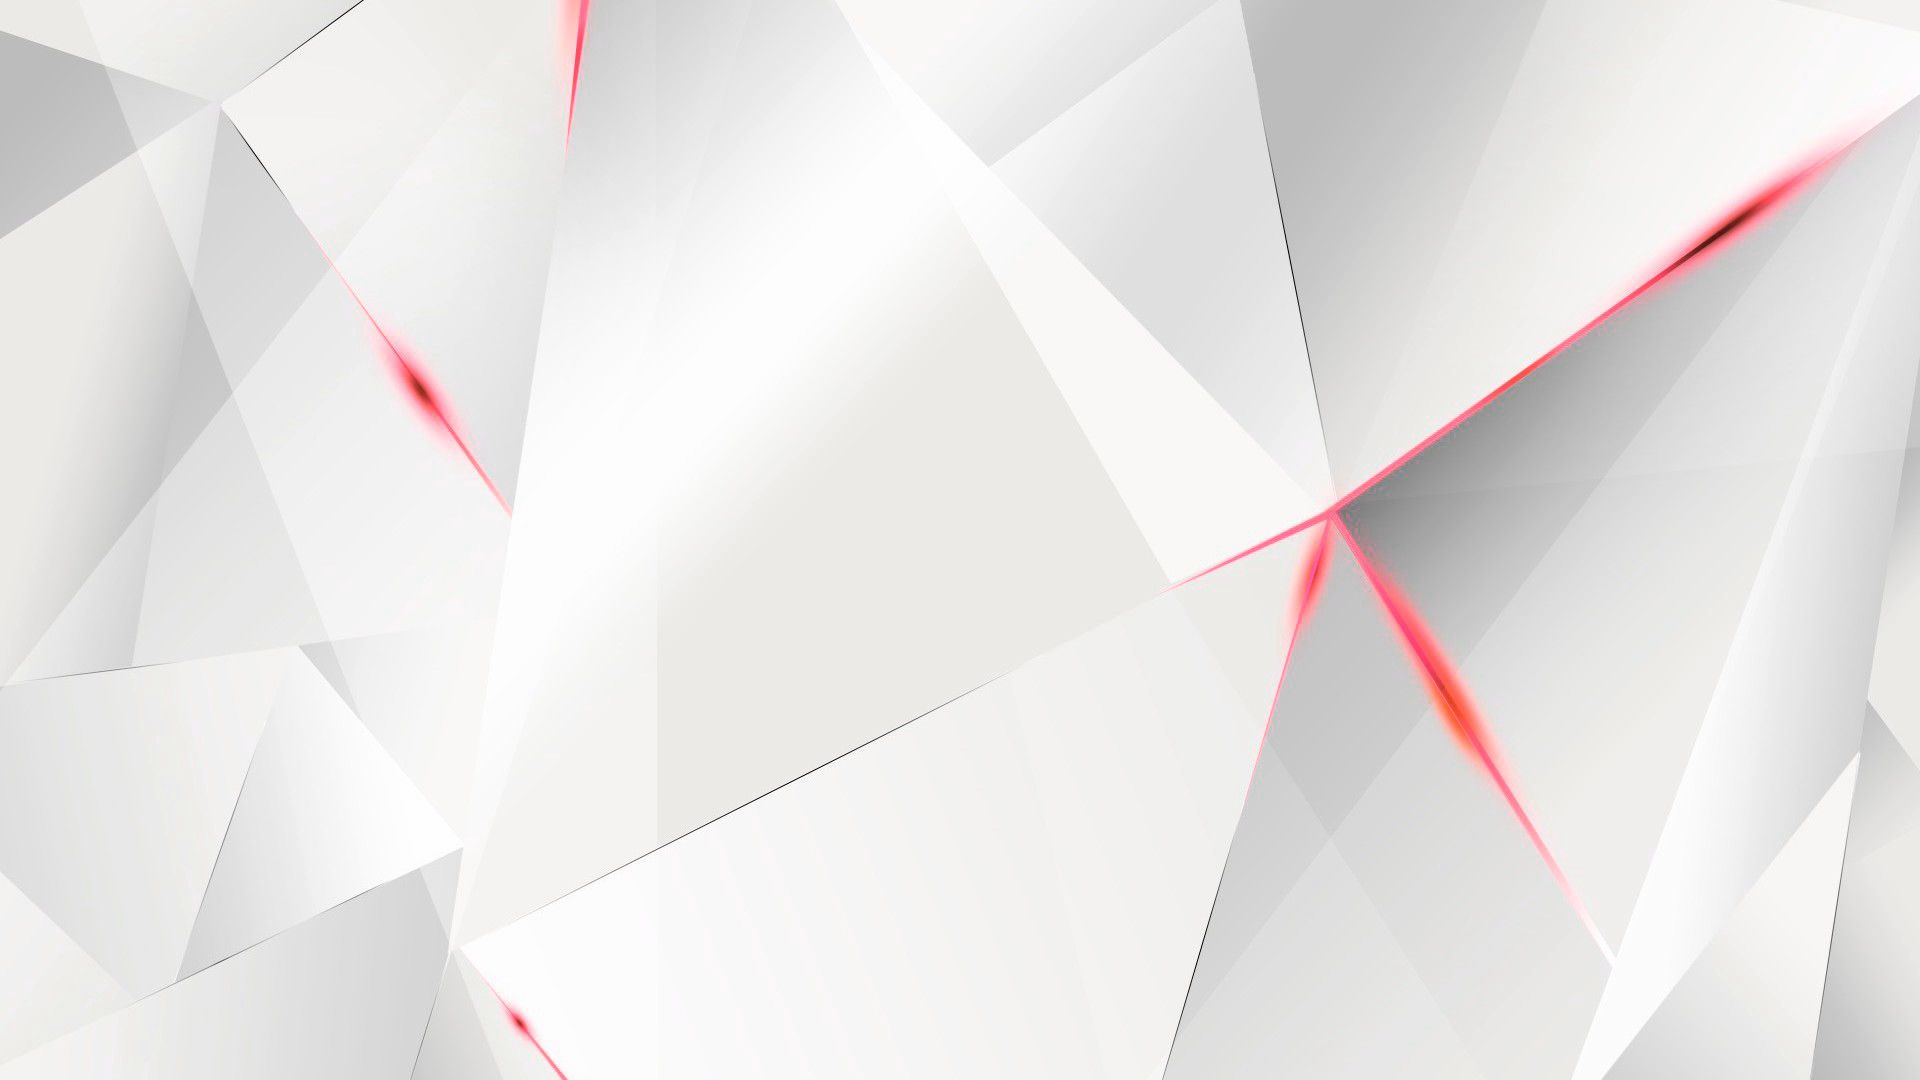 4K Red White Abstract Wallpapers - Top Free 4K Red White ...